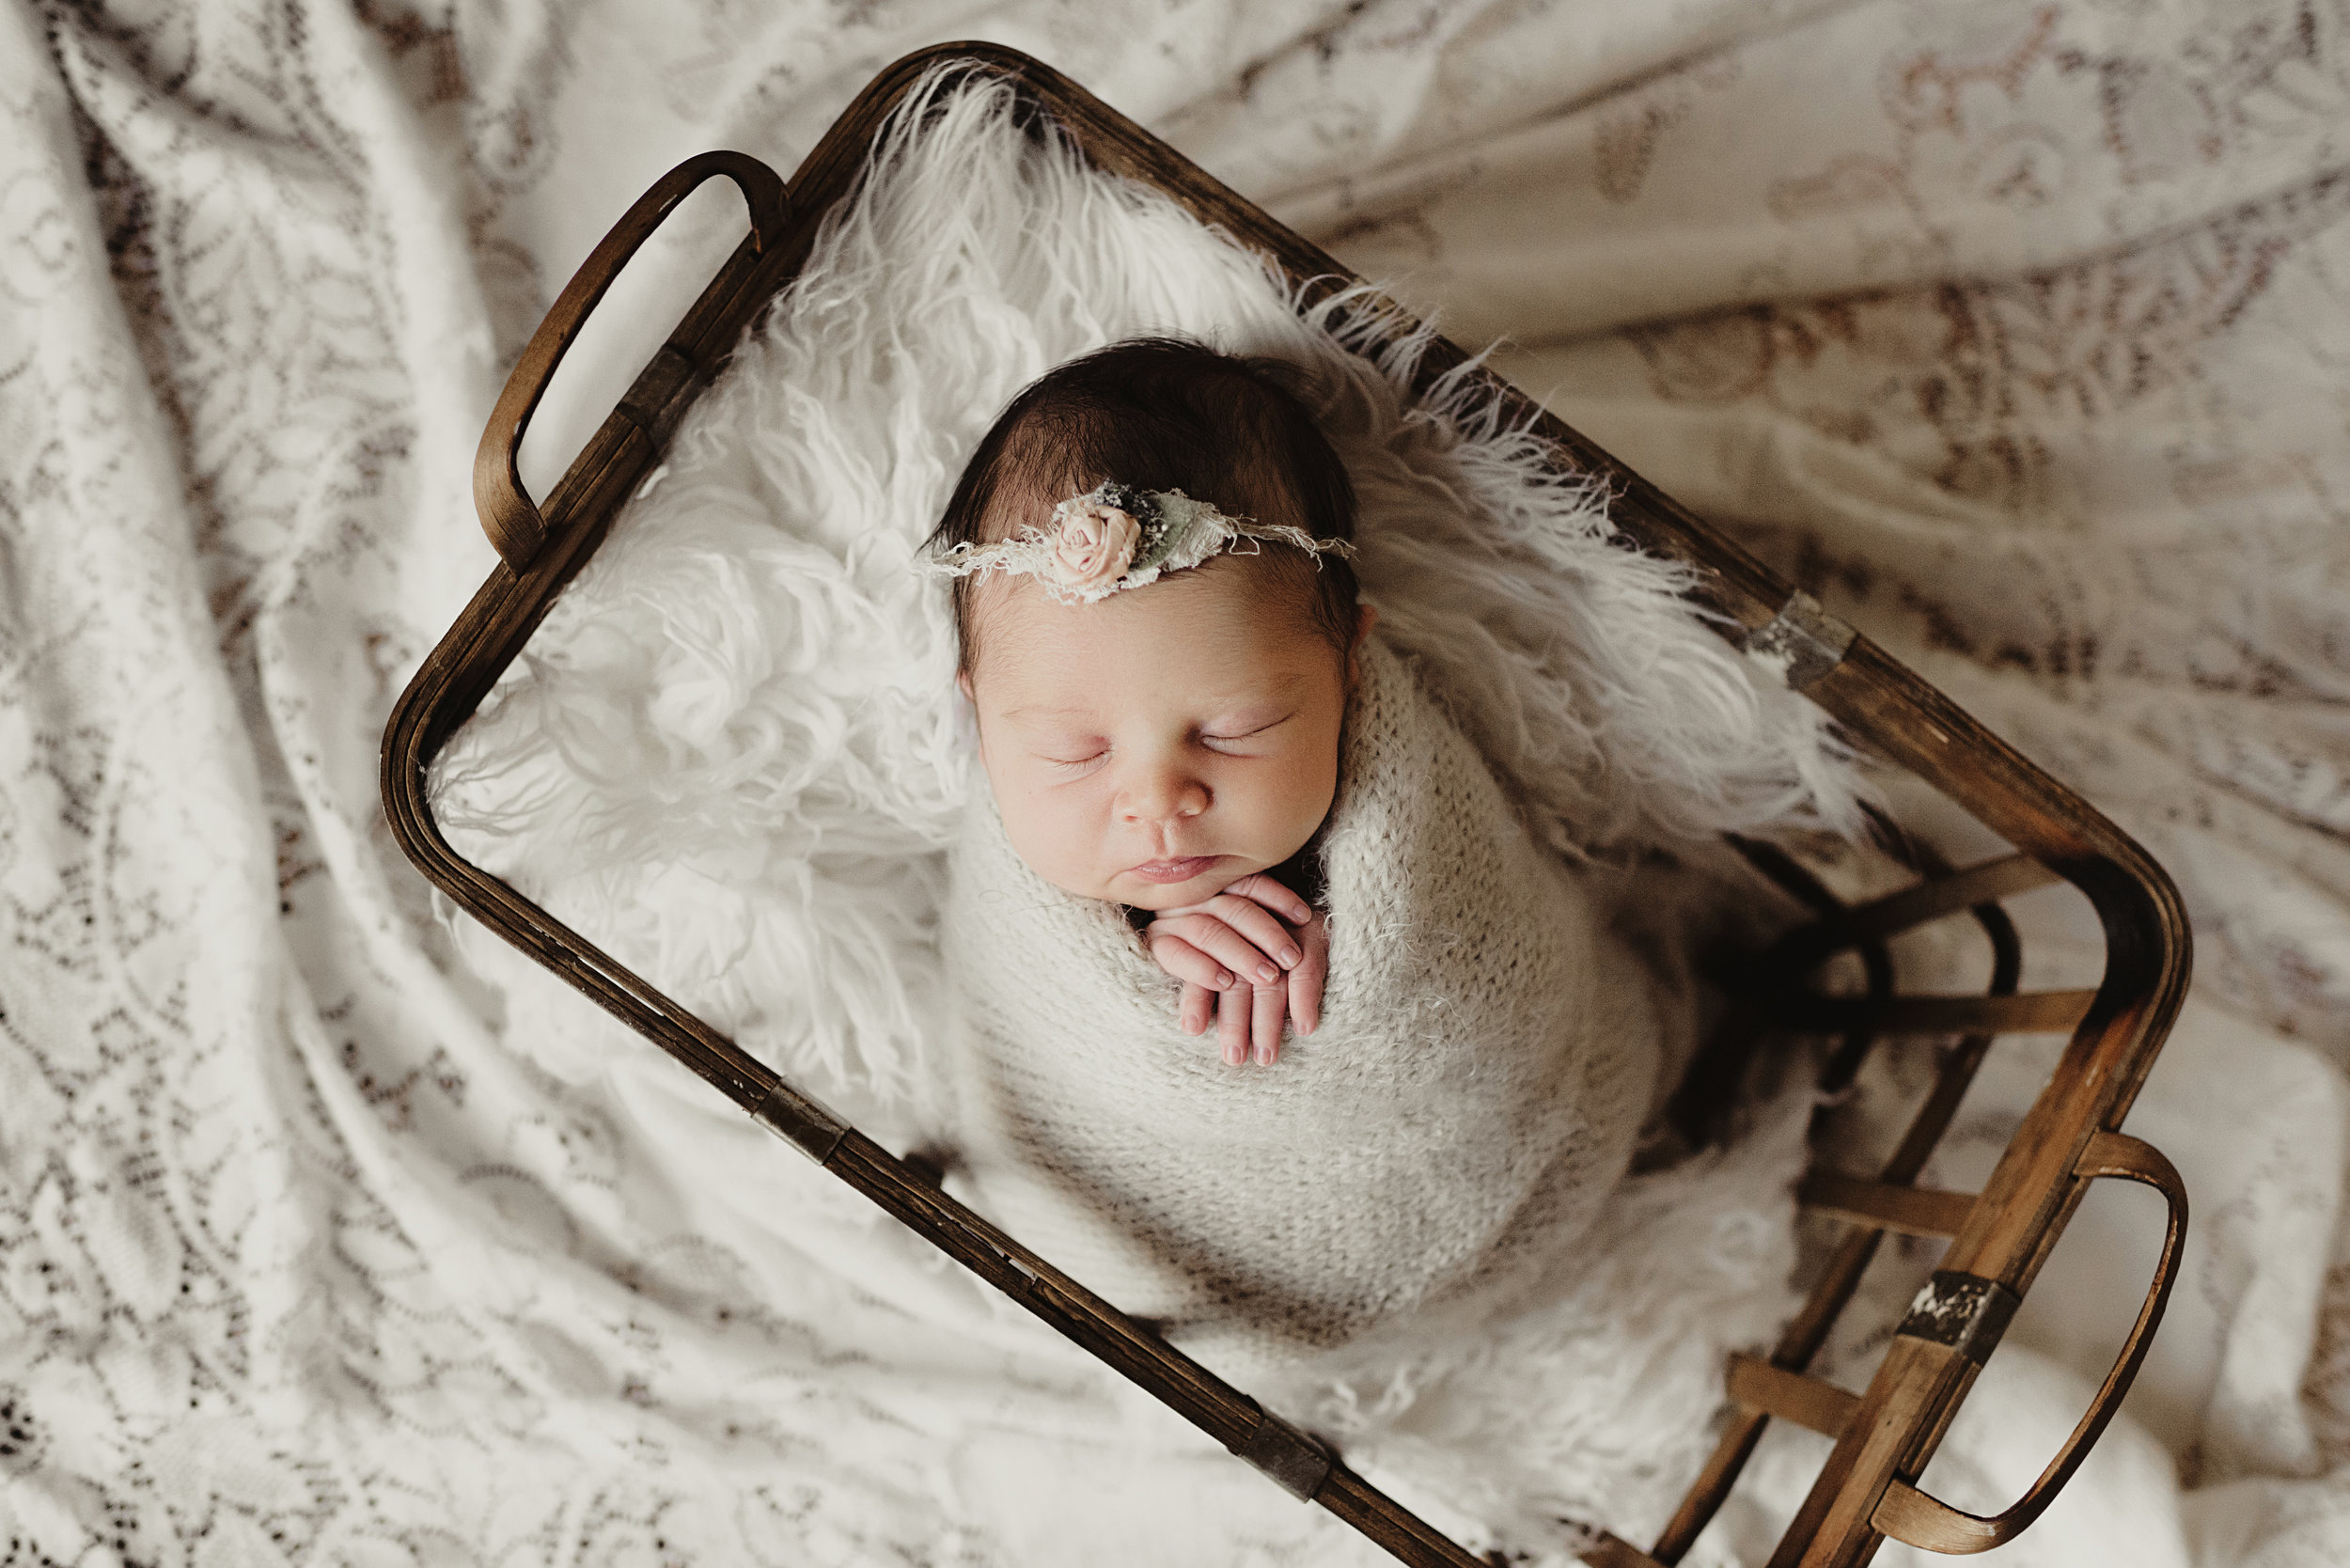 Mini Newborn Session - 3 styled setsphotos of just baby10 digital imagesonline gallery + print release